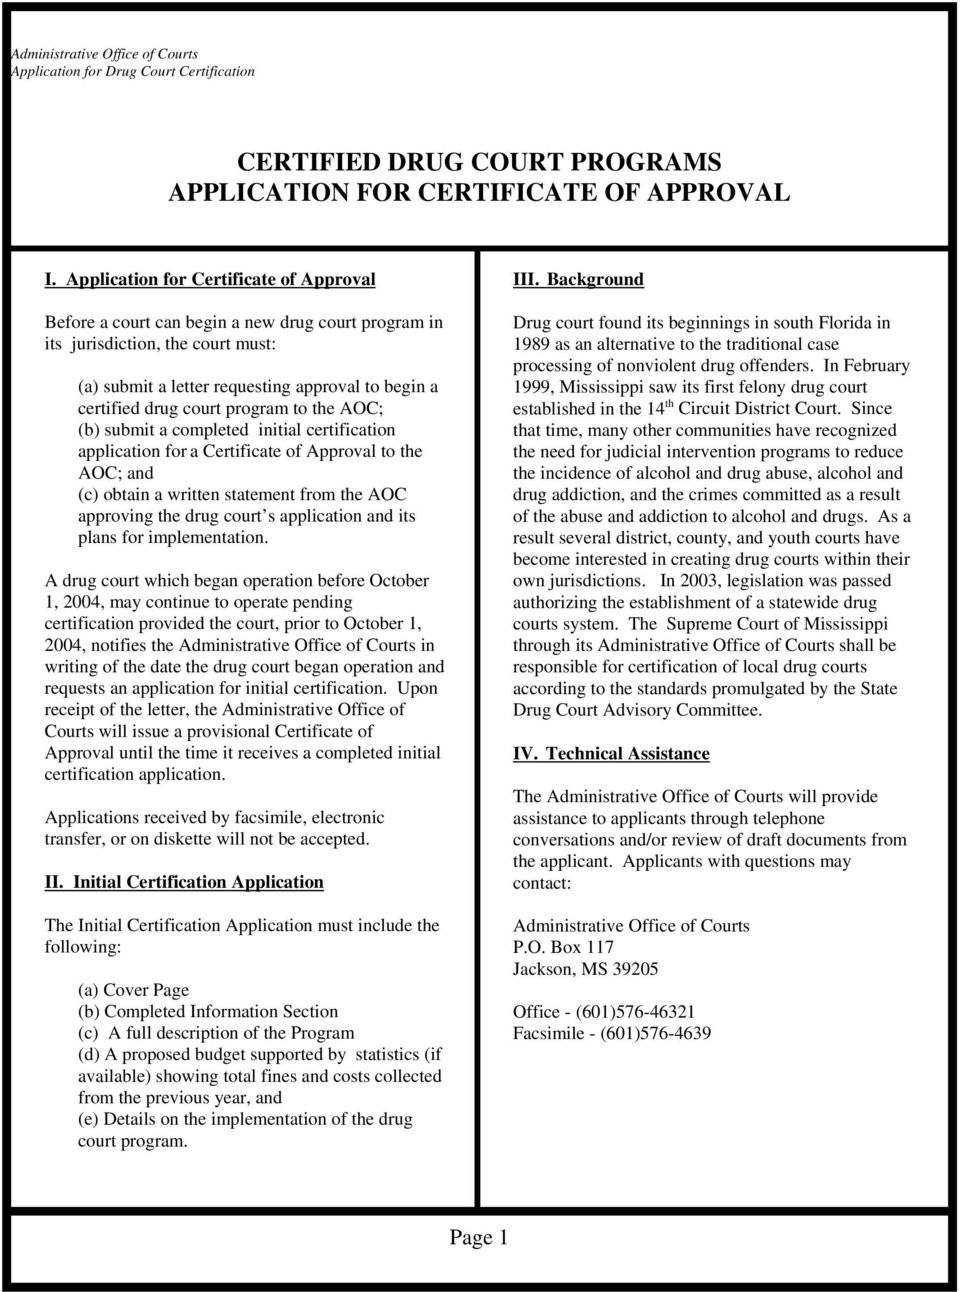 submit a completed initial certification application for a Certificate of Approval to the AOC; and (c) obtain a written statement from the AOC approving the drug court s application and its plans for